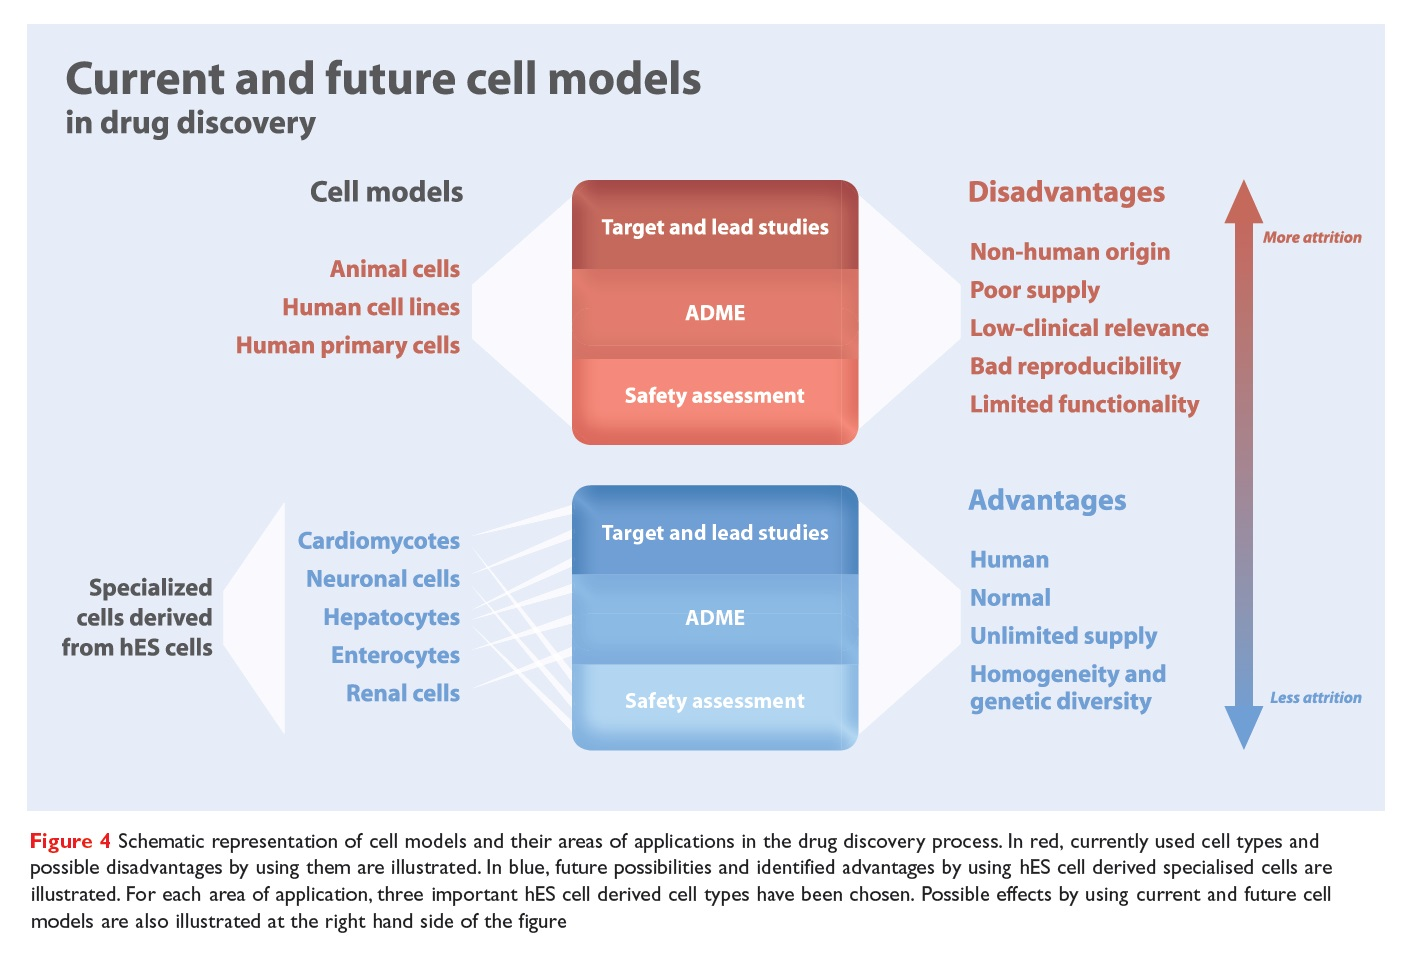 Figure 4 Schematic representation of cell models and their areas of applications in the drug discovery process